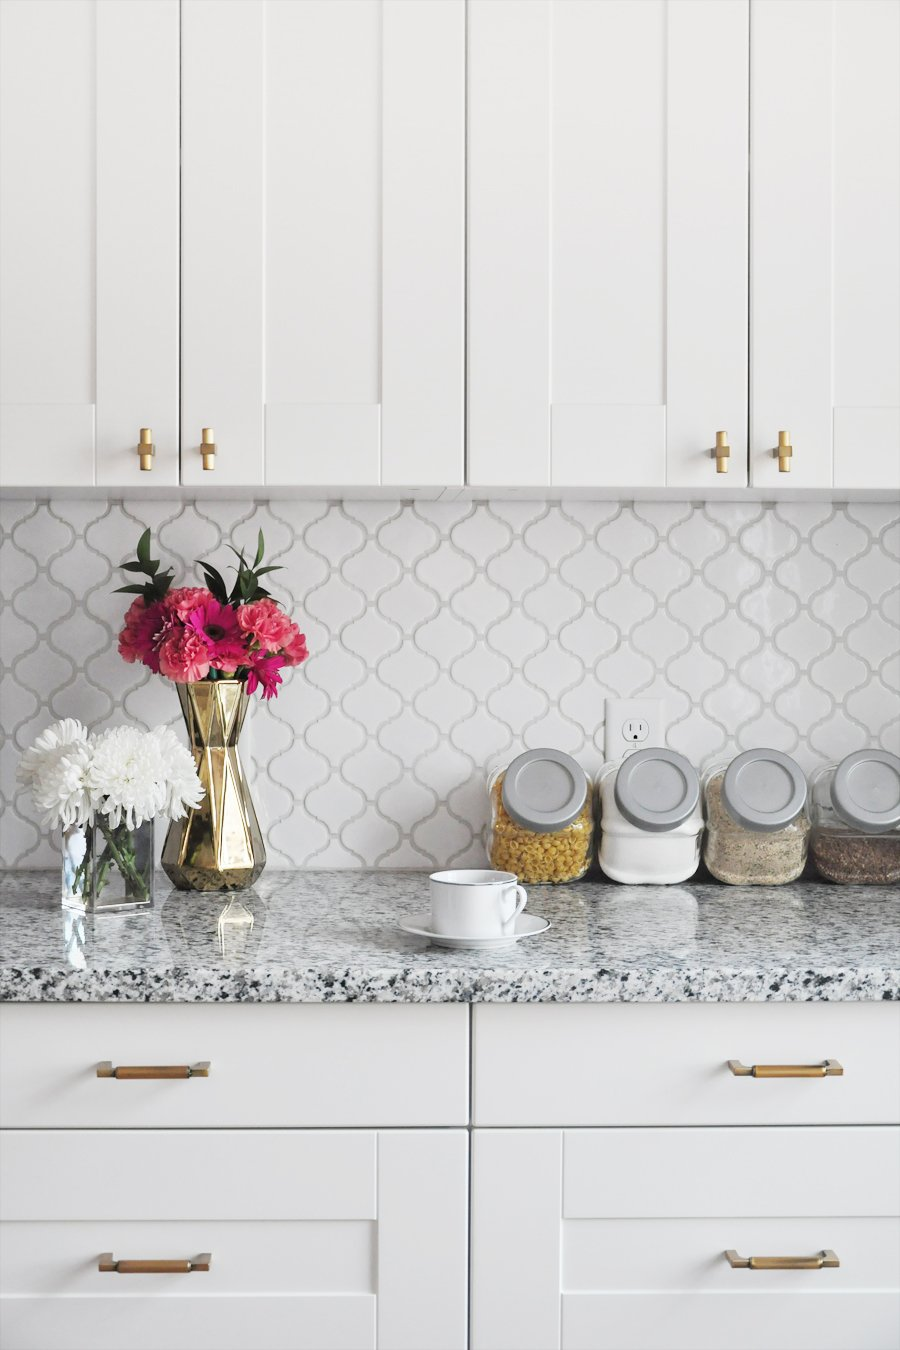 Our Best Renovation Decisions, Part II